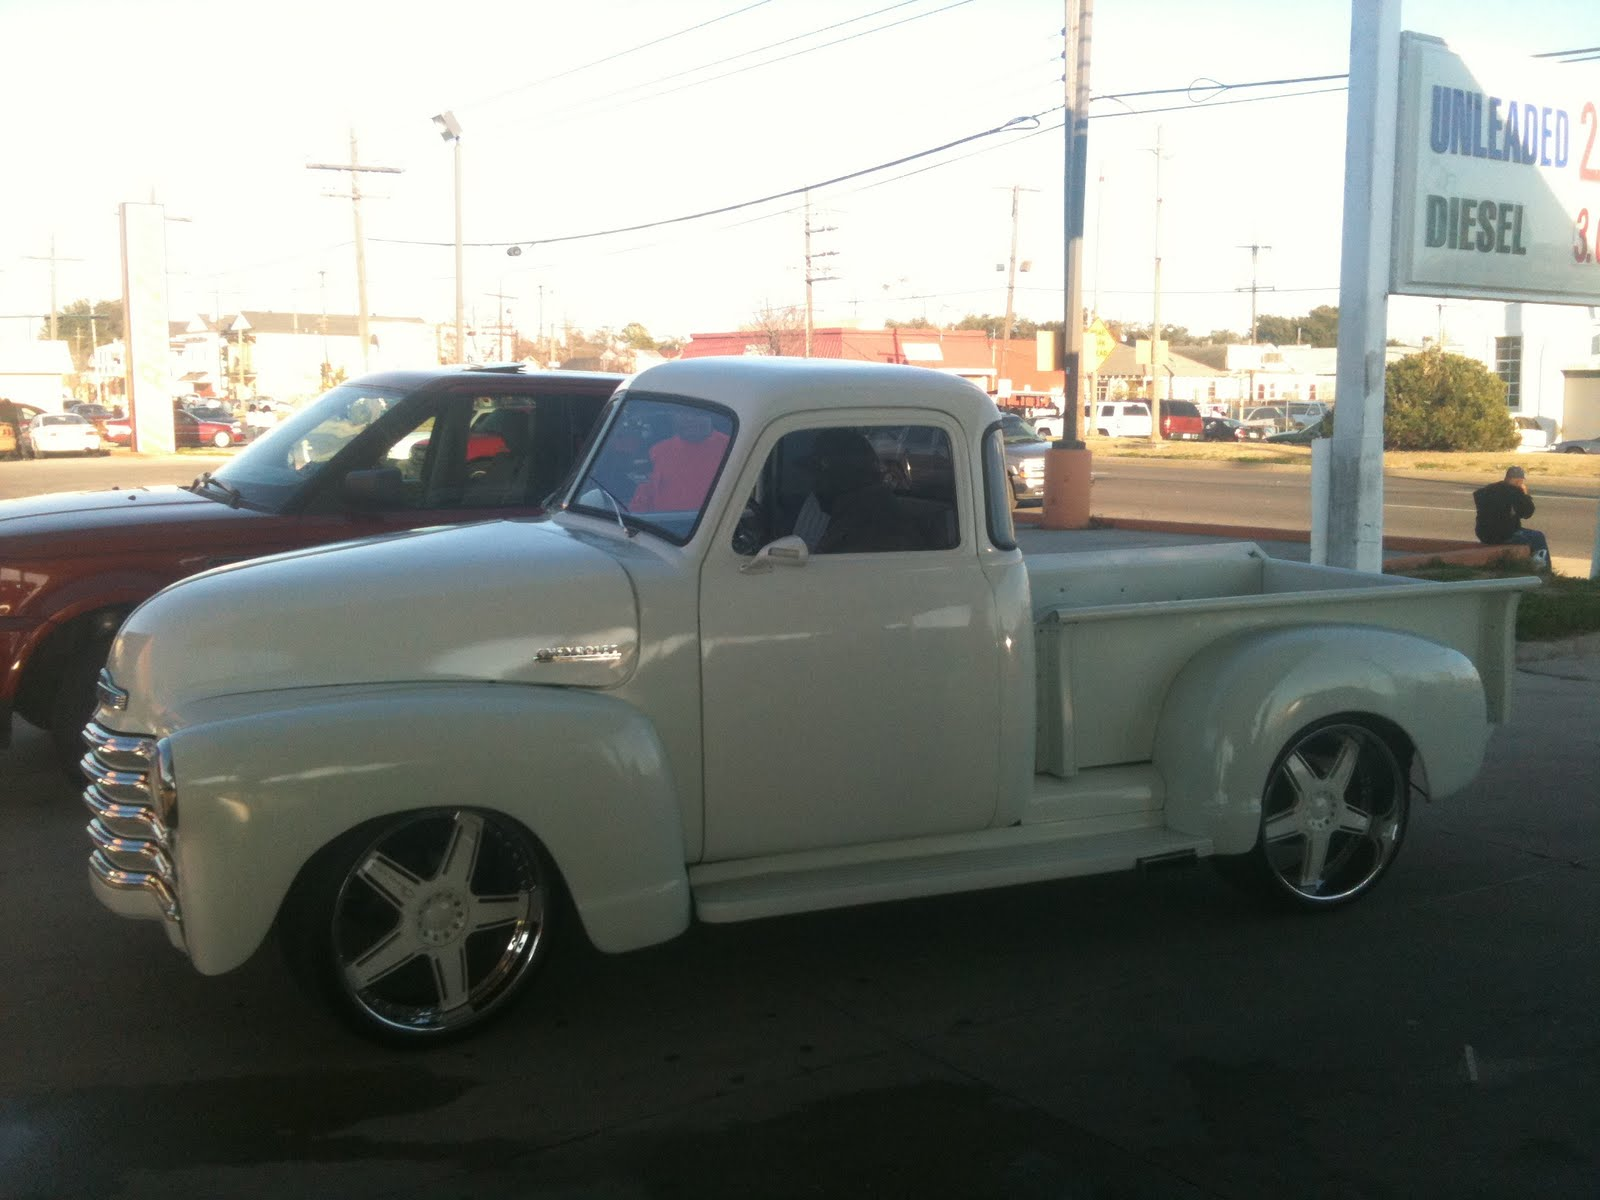 White Wheels on White Truck 1950 Chevy Truck w/ White